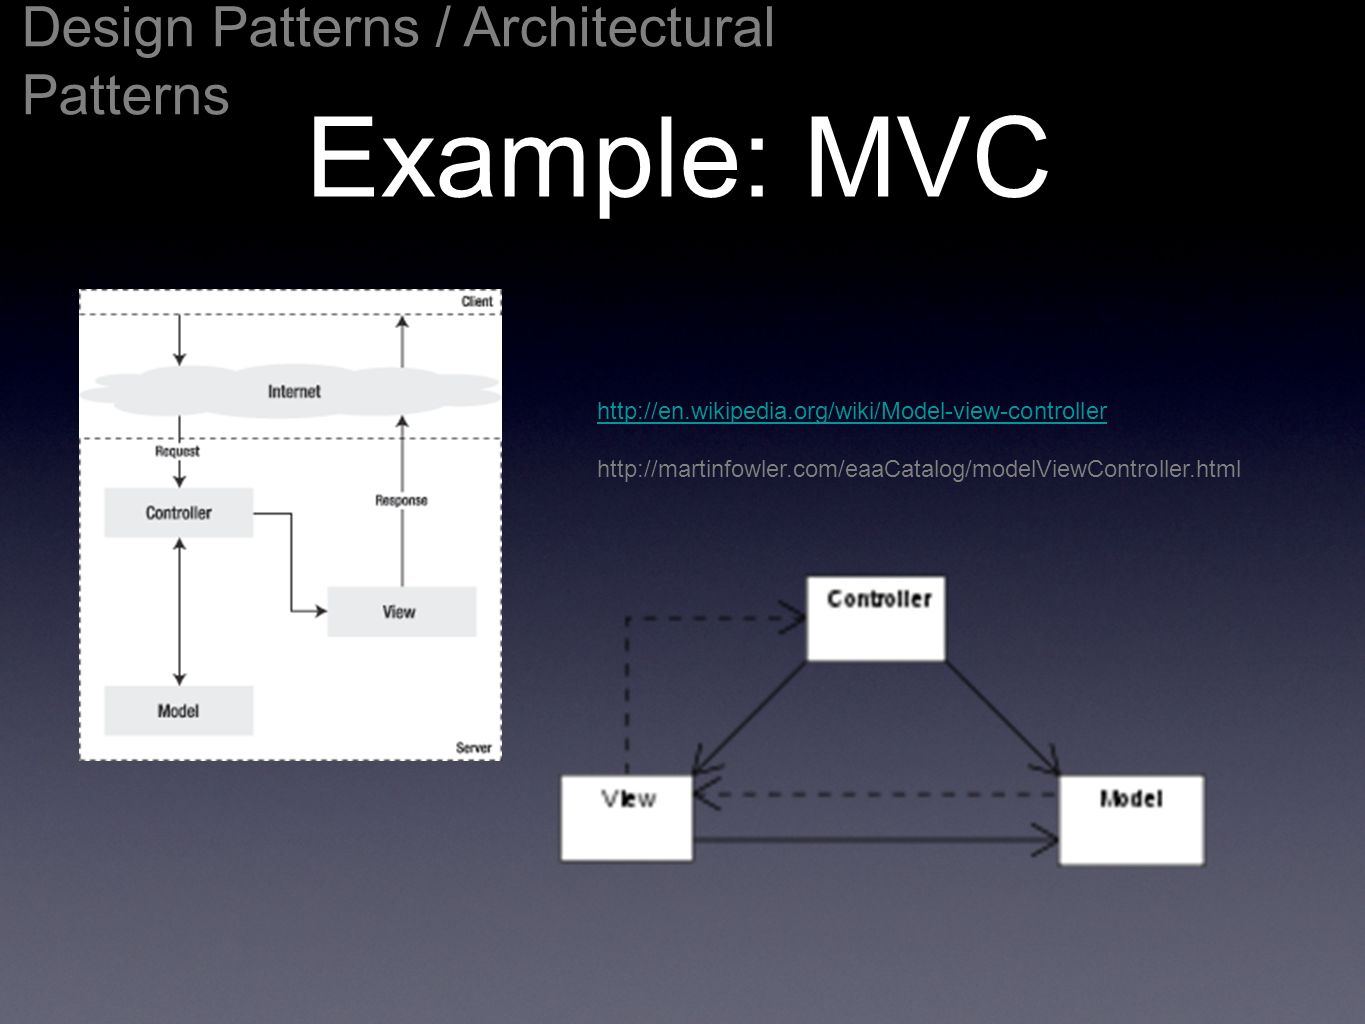 Example: MVC Design Patterns / Architectural Patterns http://en.wikipedia.org/wiki/Model-view-controller http://martinfowler.com/eaaCatalog/modelViewC